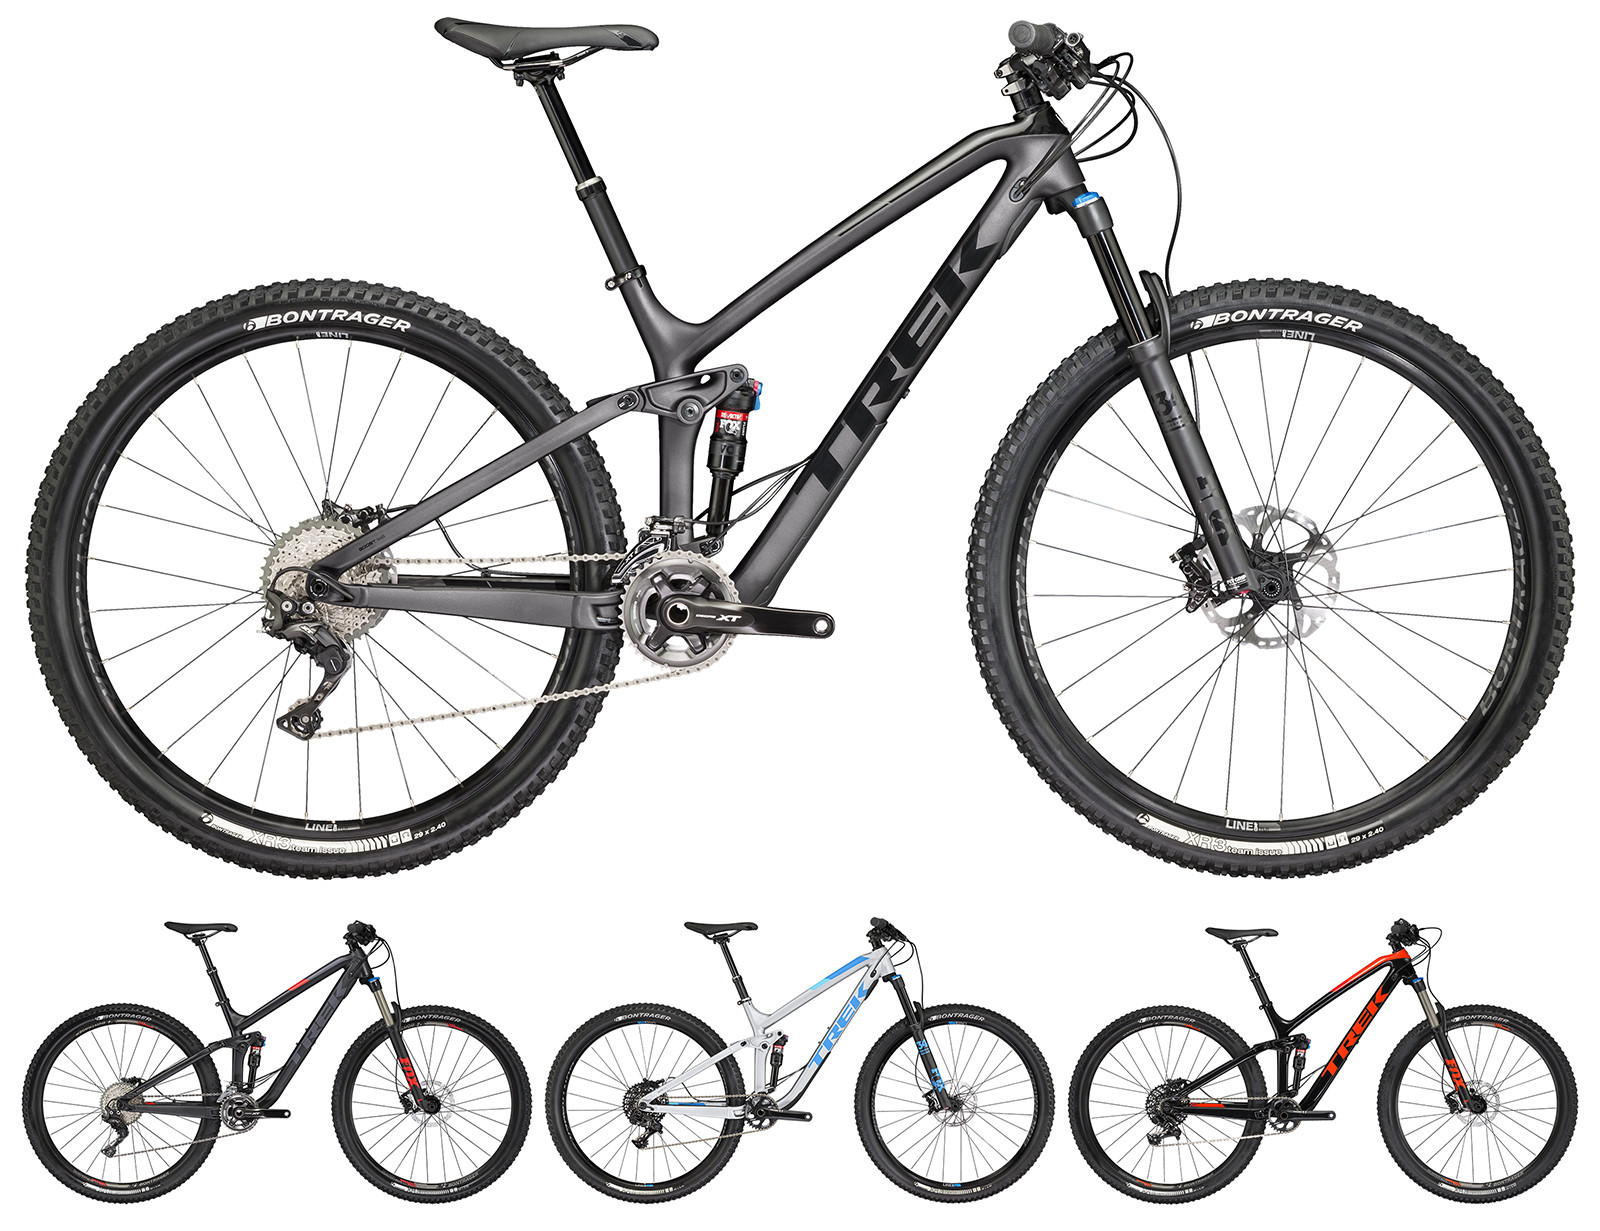 First Look: 2017 Trek Remedy 27 5 and Fuel EX 29 - Mountain Bikes